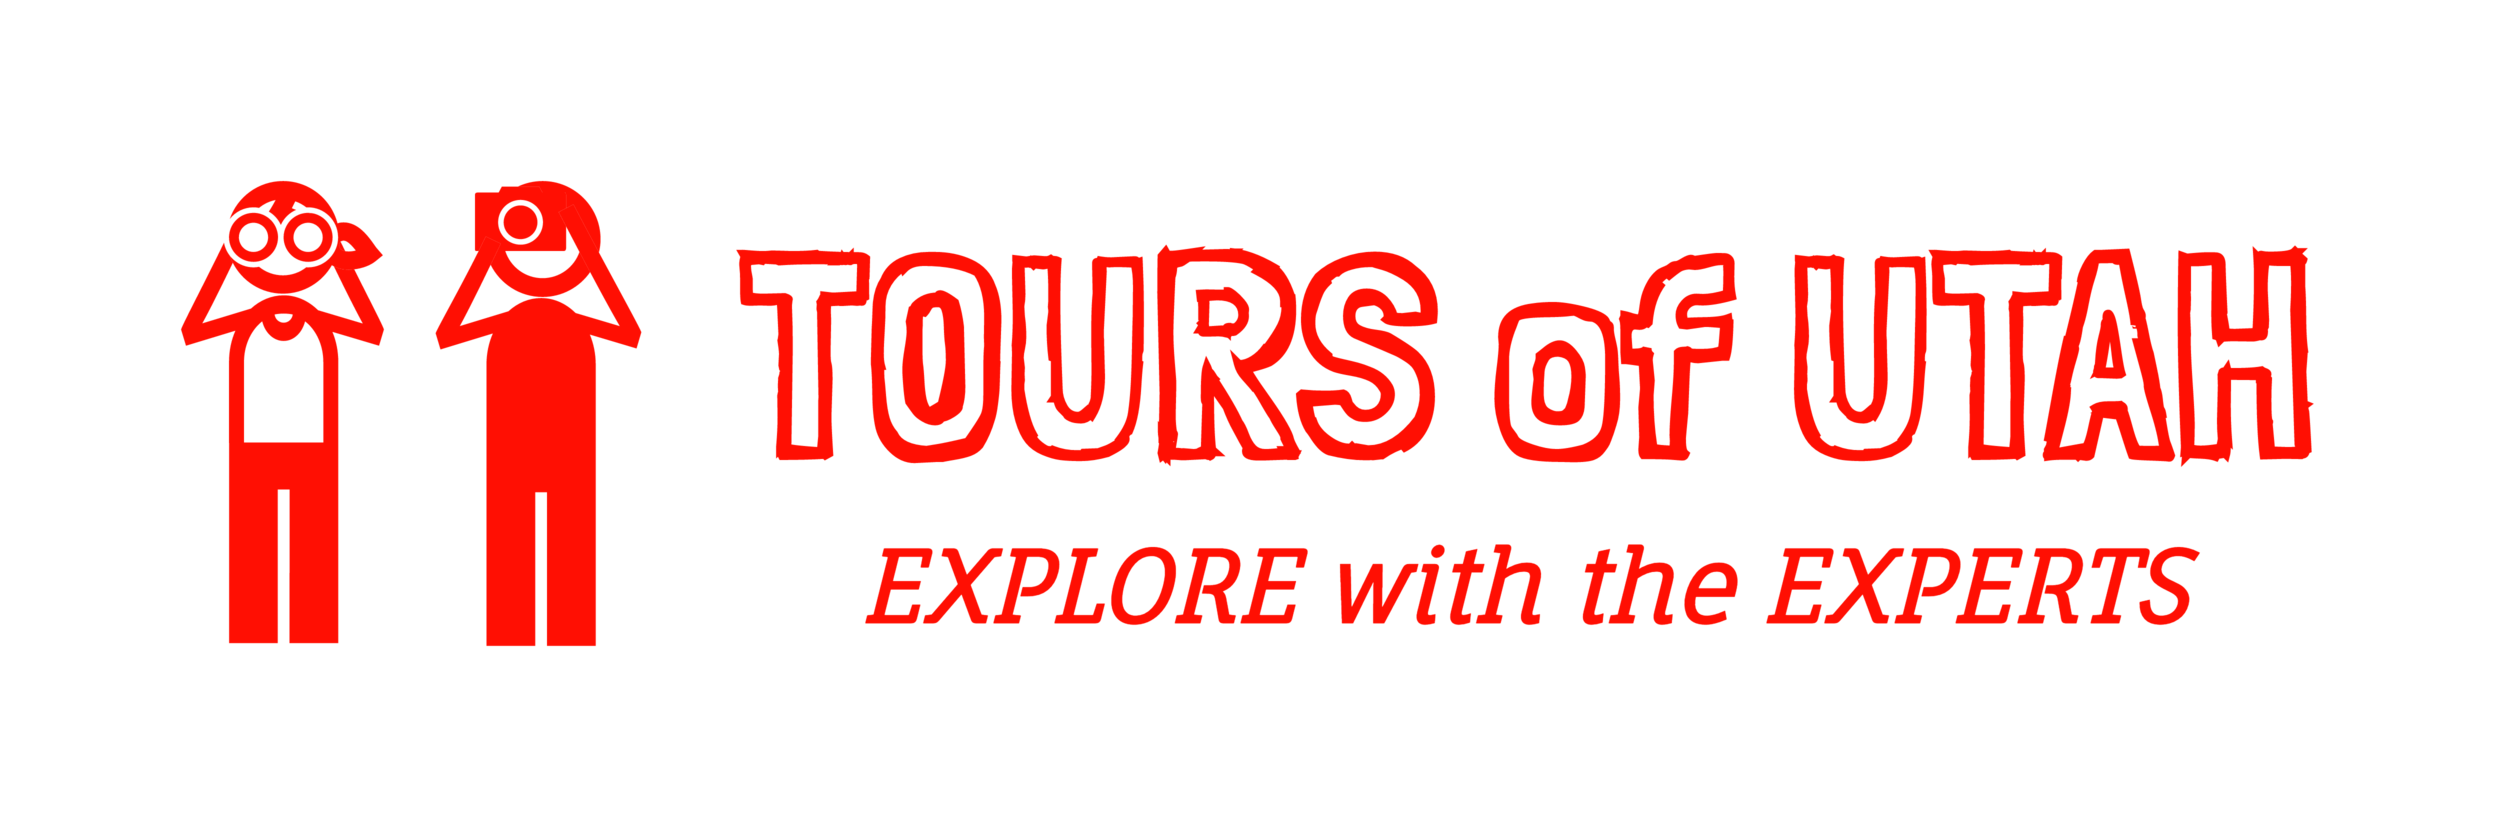 LOGO Tours of Utah -Explore with the Experts.png